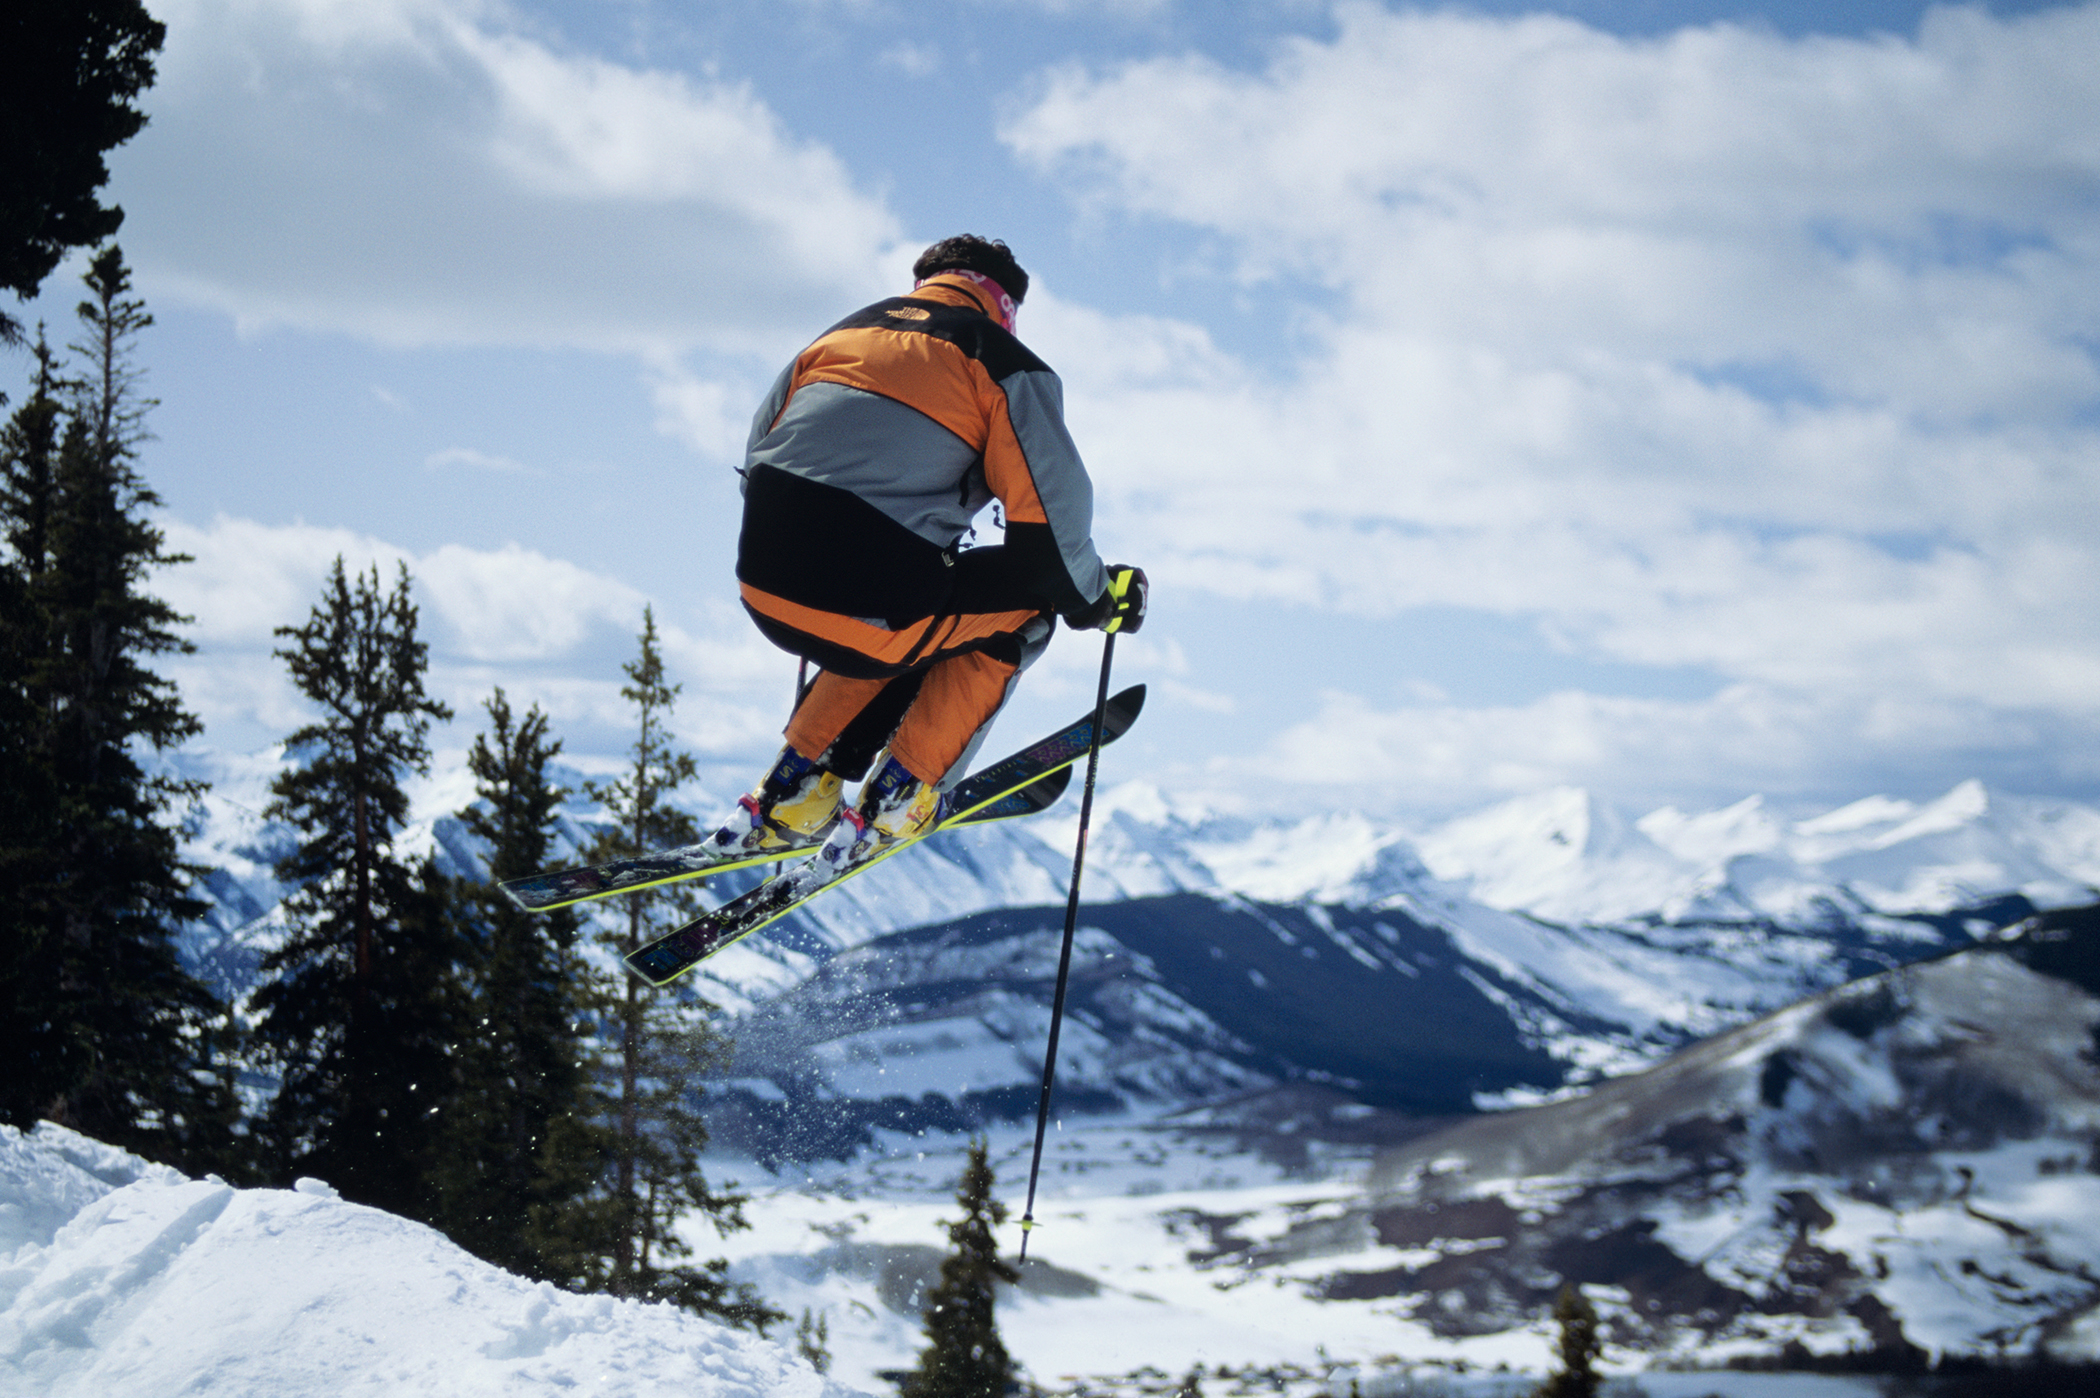 Skier in mid-air, Crested Butte, Colorado